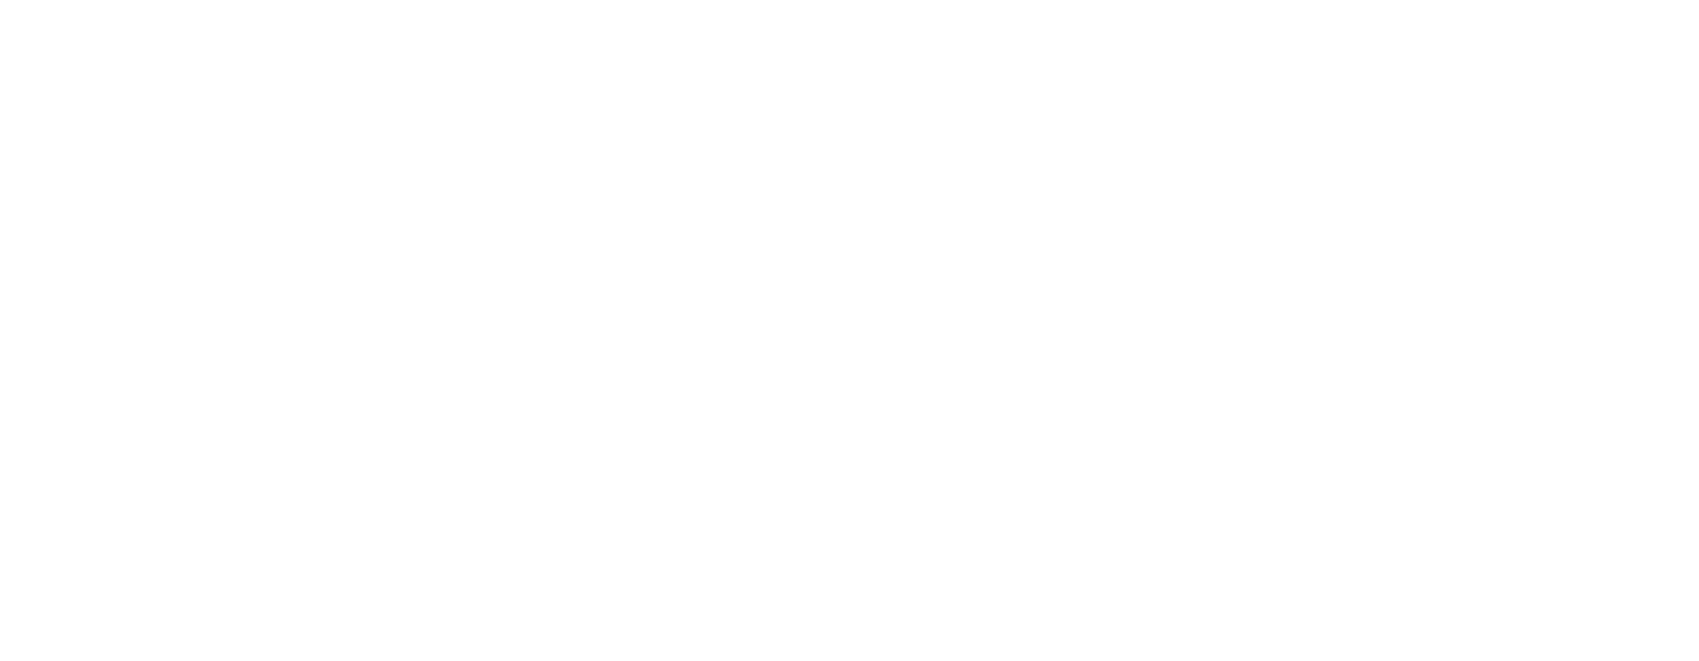 Valley Cars and Classics